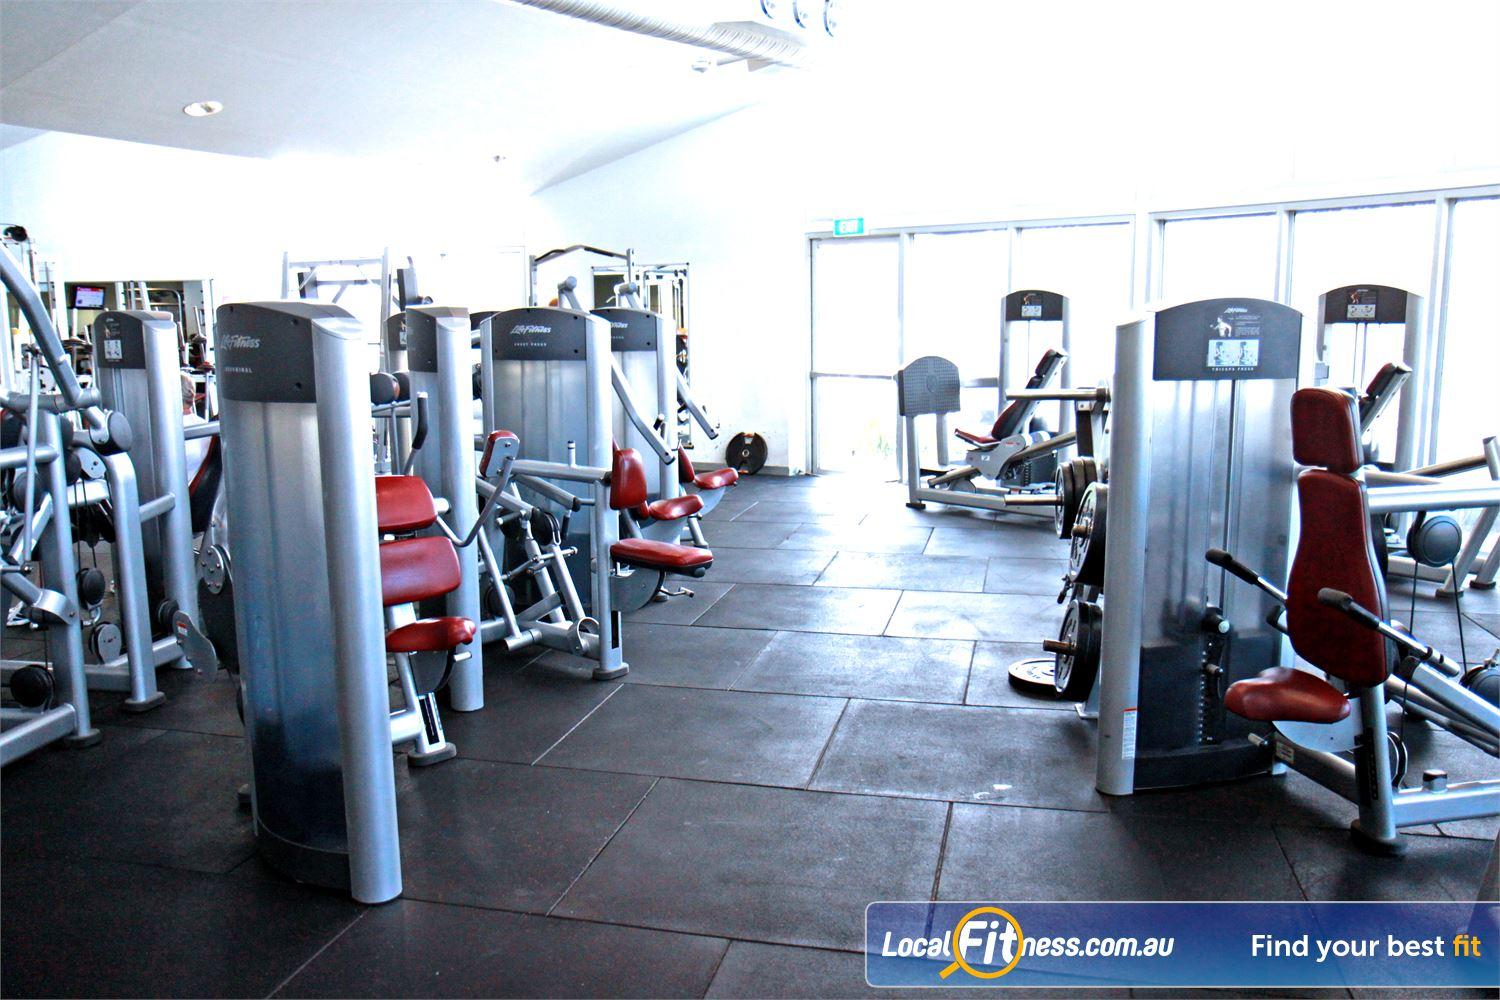 Ascot Vale Leisure Centre Near Moonee Ponds State of the art equipment from Life Fitness in our Ascot Vale gym.